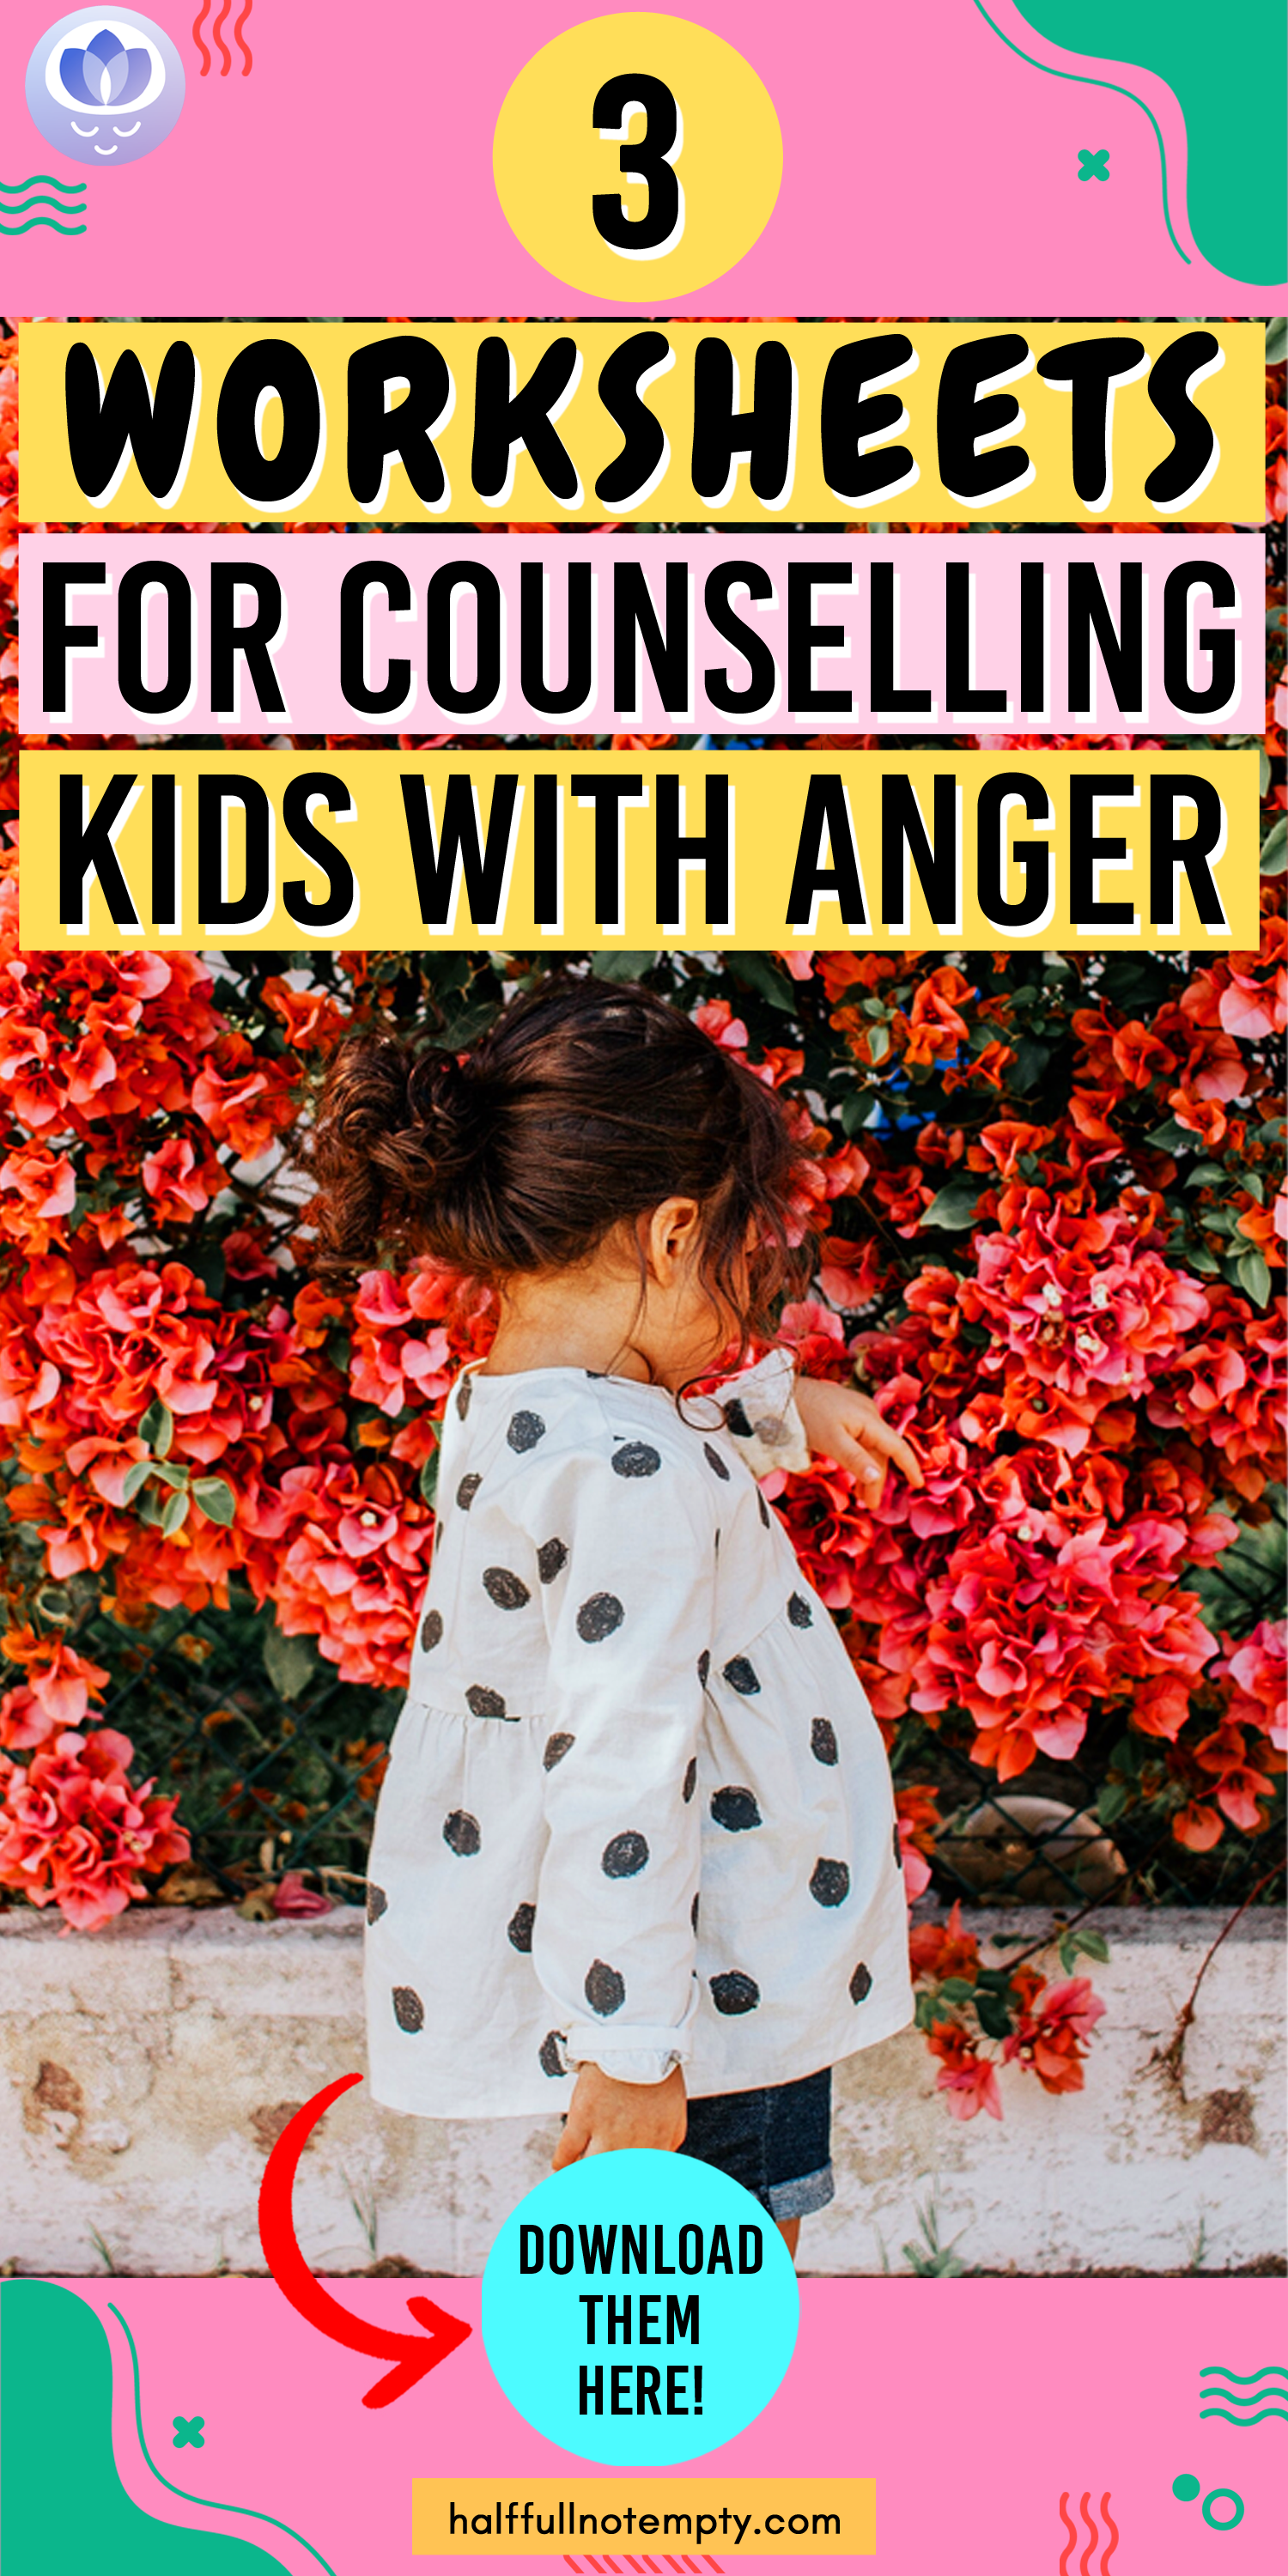 3 Worksheets For Counseling Kids With Anger